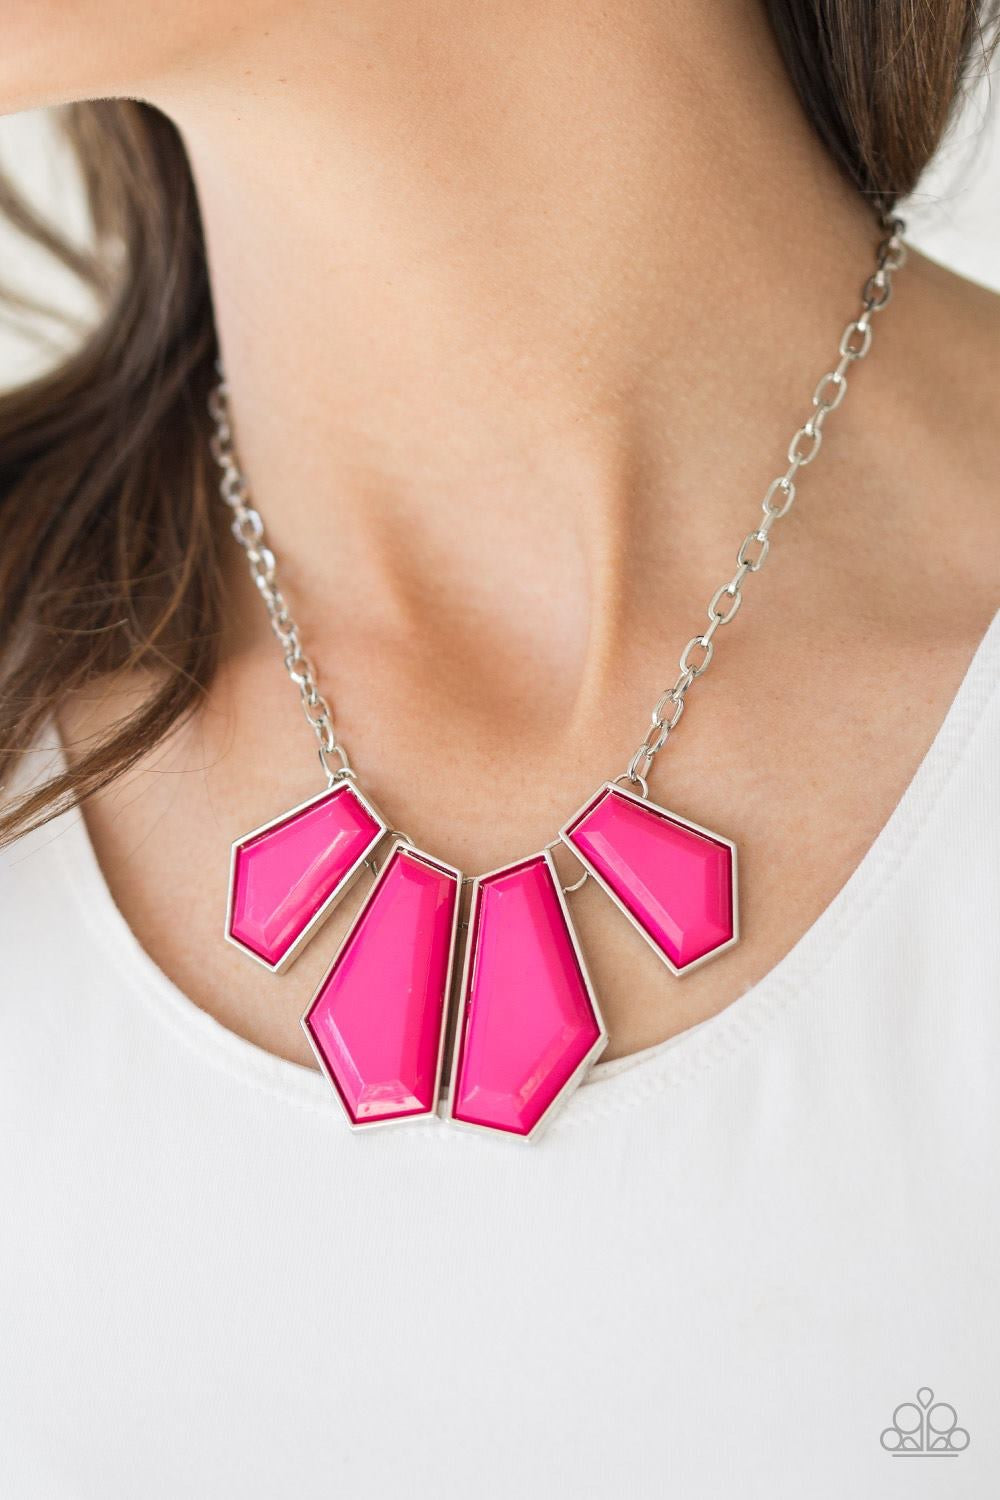 Get Up and GEO Pink Necklace